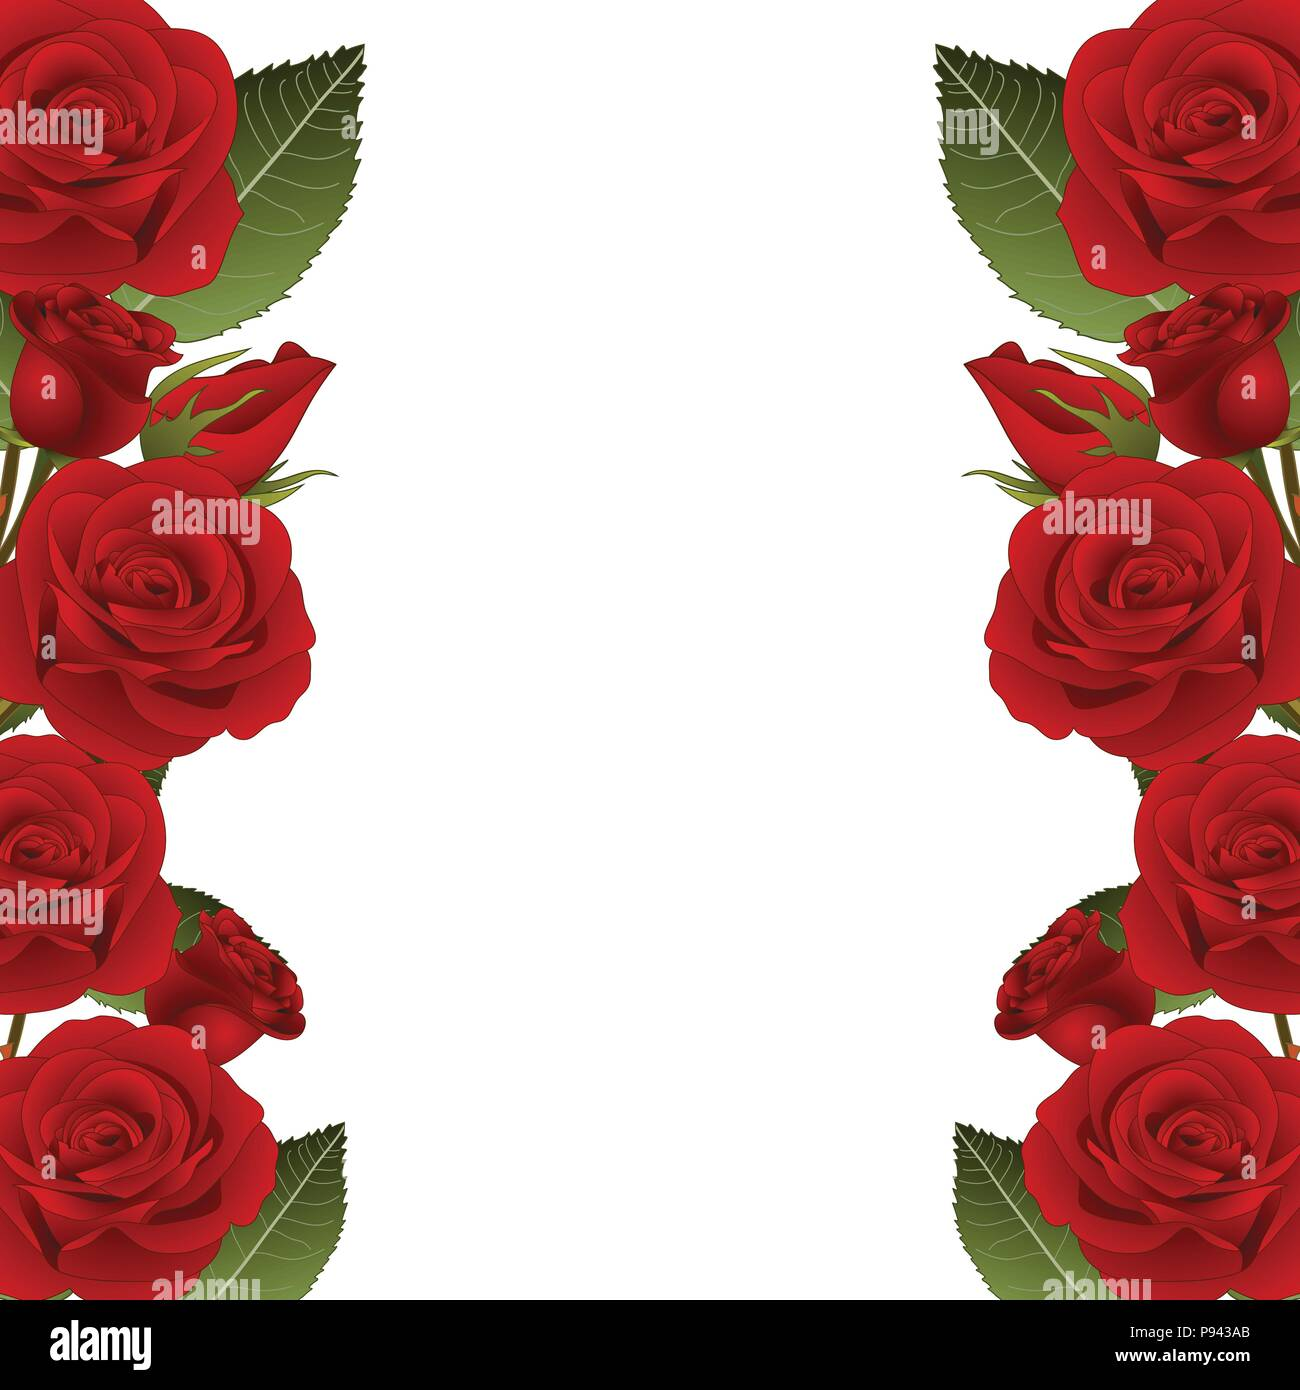 Red Rose Flower Frame Border. isolated on White Background. Vector ...